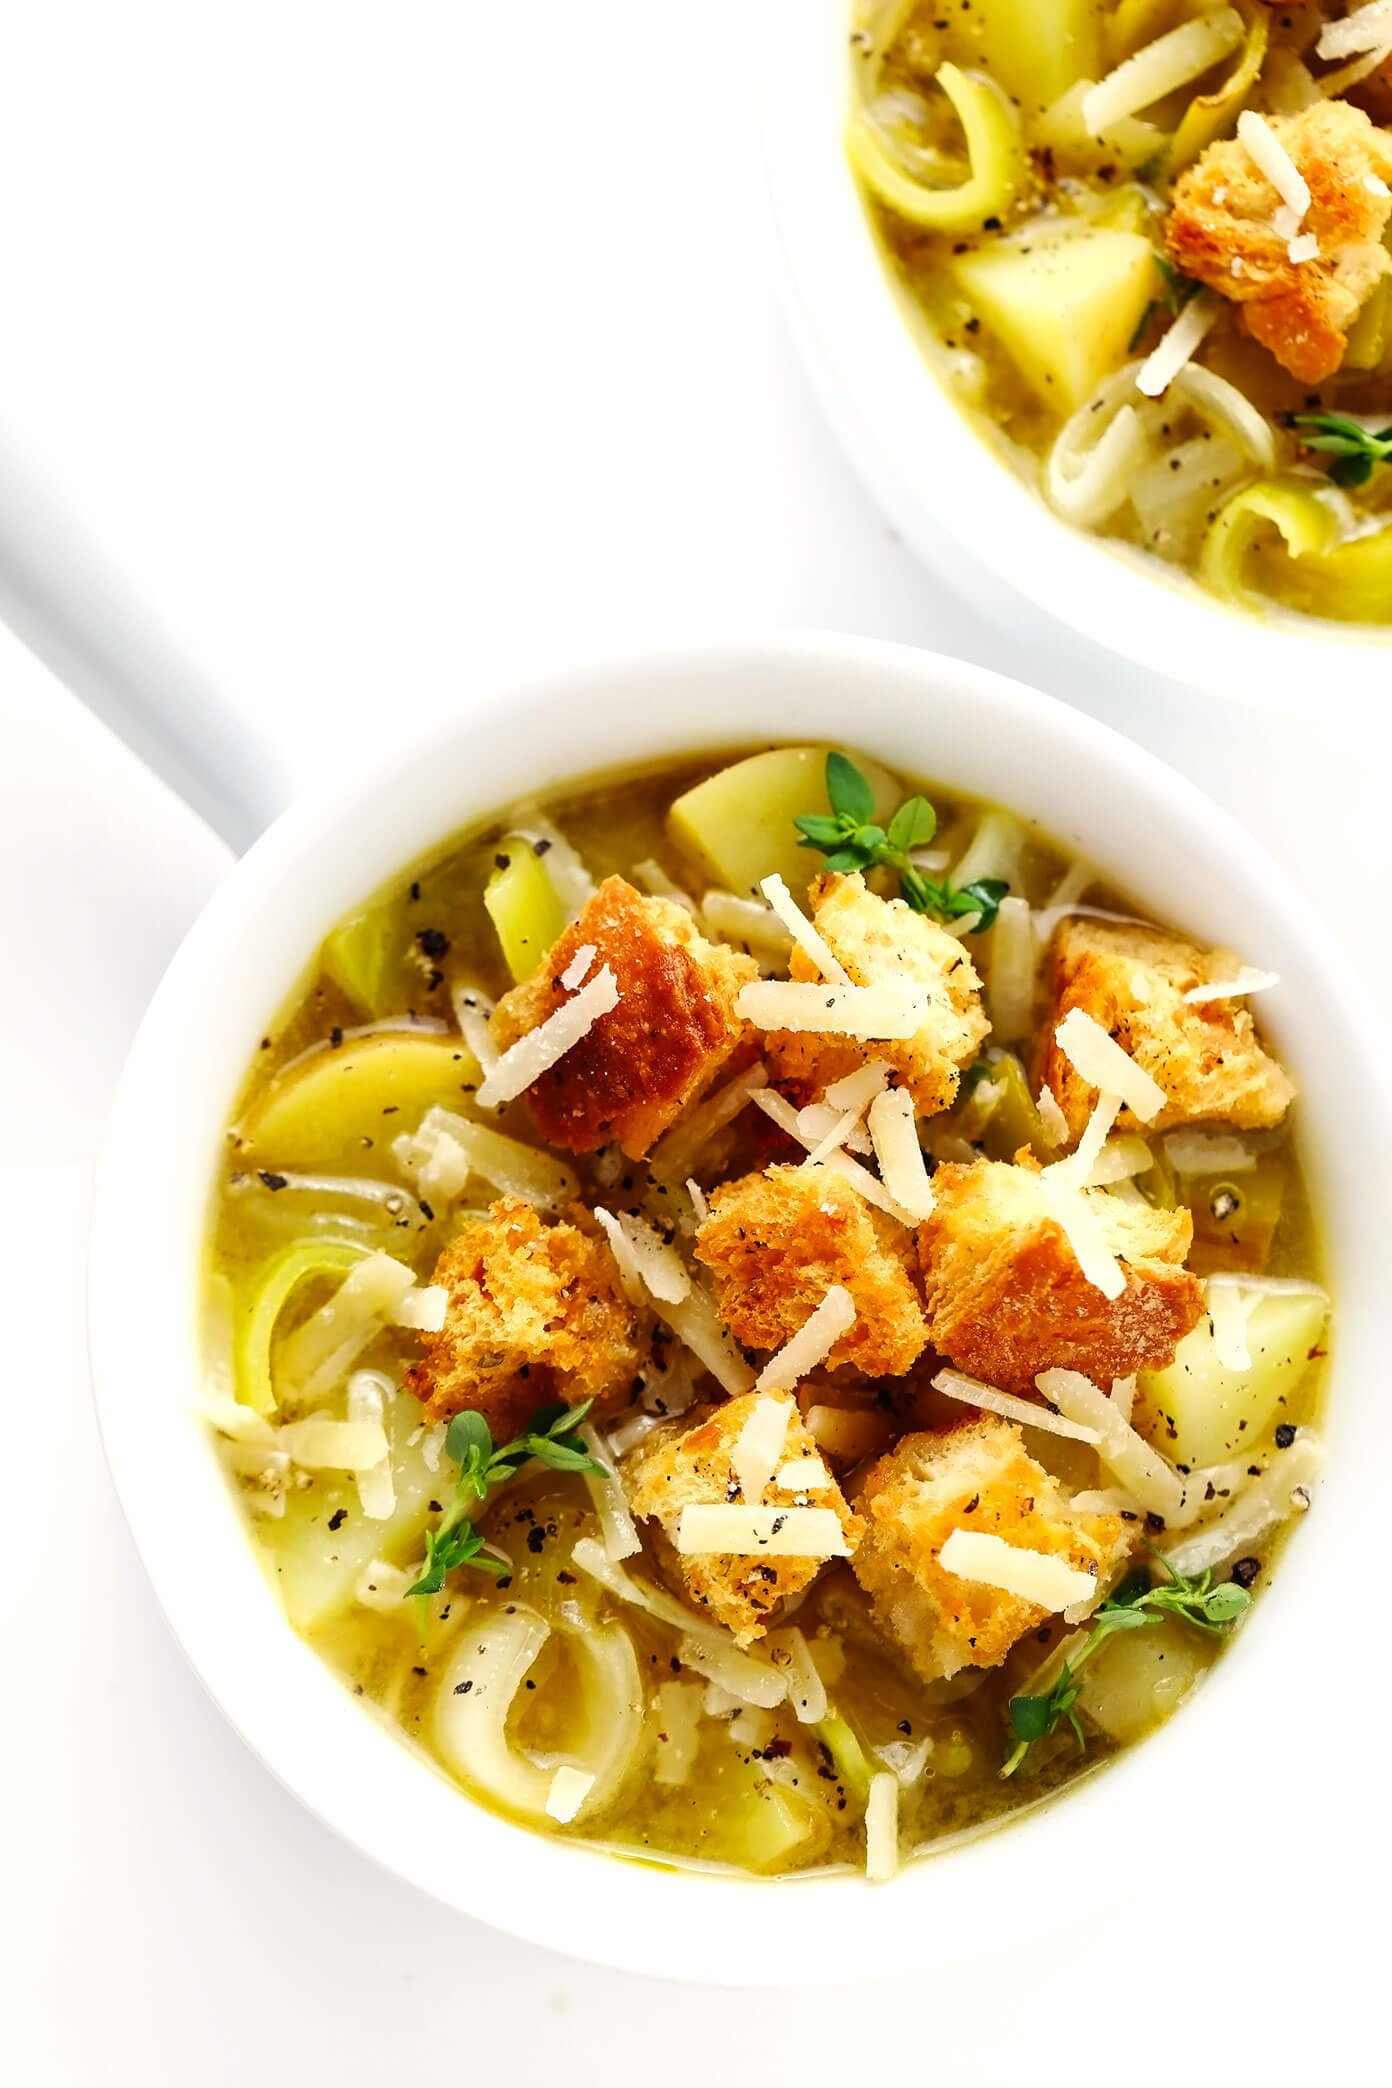 Bowls of Rustic Potato Leek Soup with Homemade Croutons and Parmesan